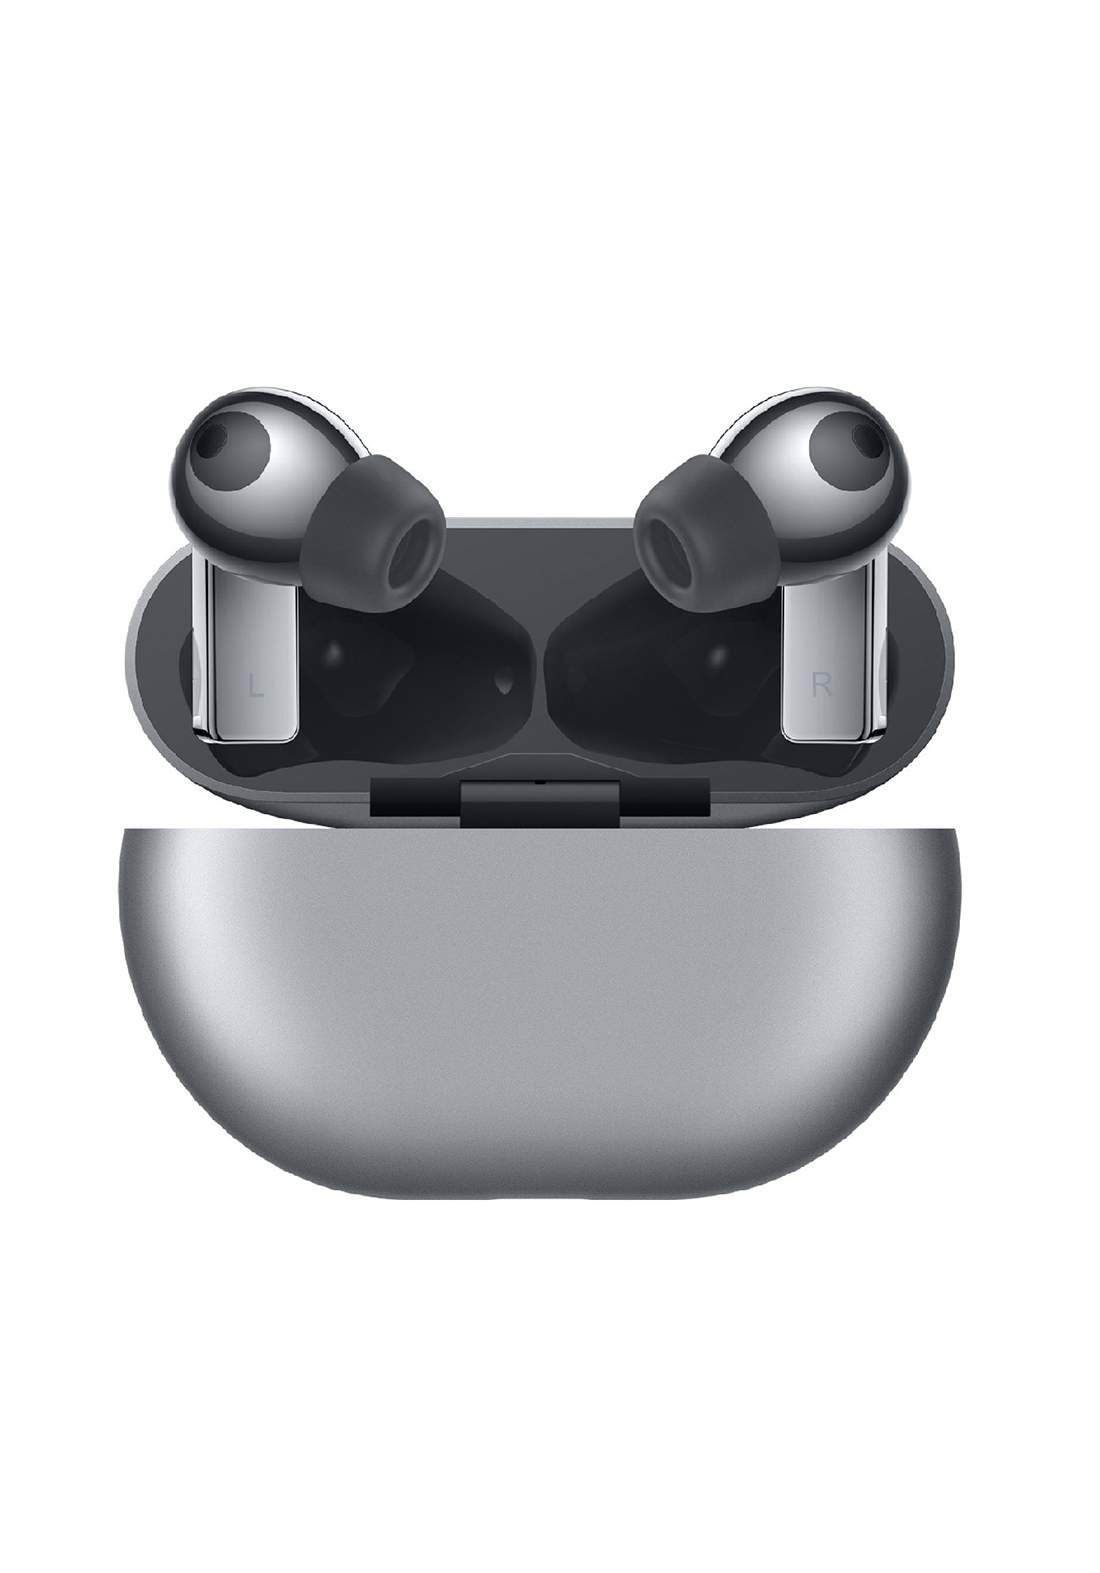 Huawei FreeBuds Pro Earphones  with Bluetooth  - Silver  سماعة